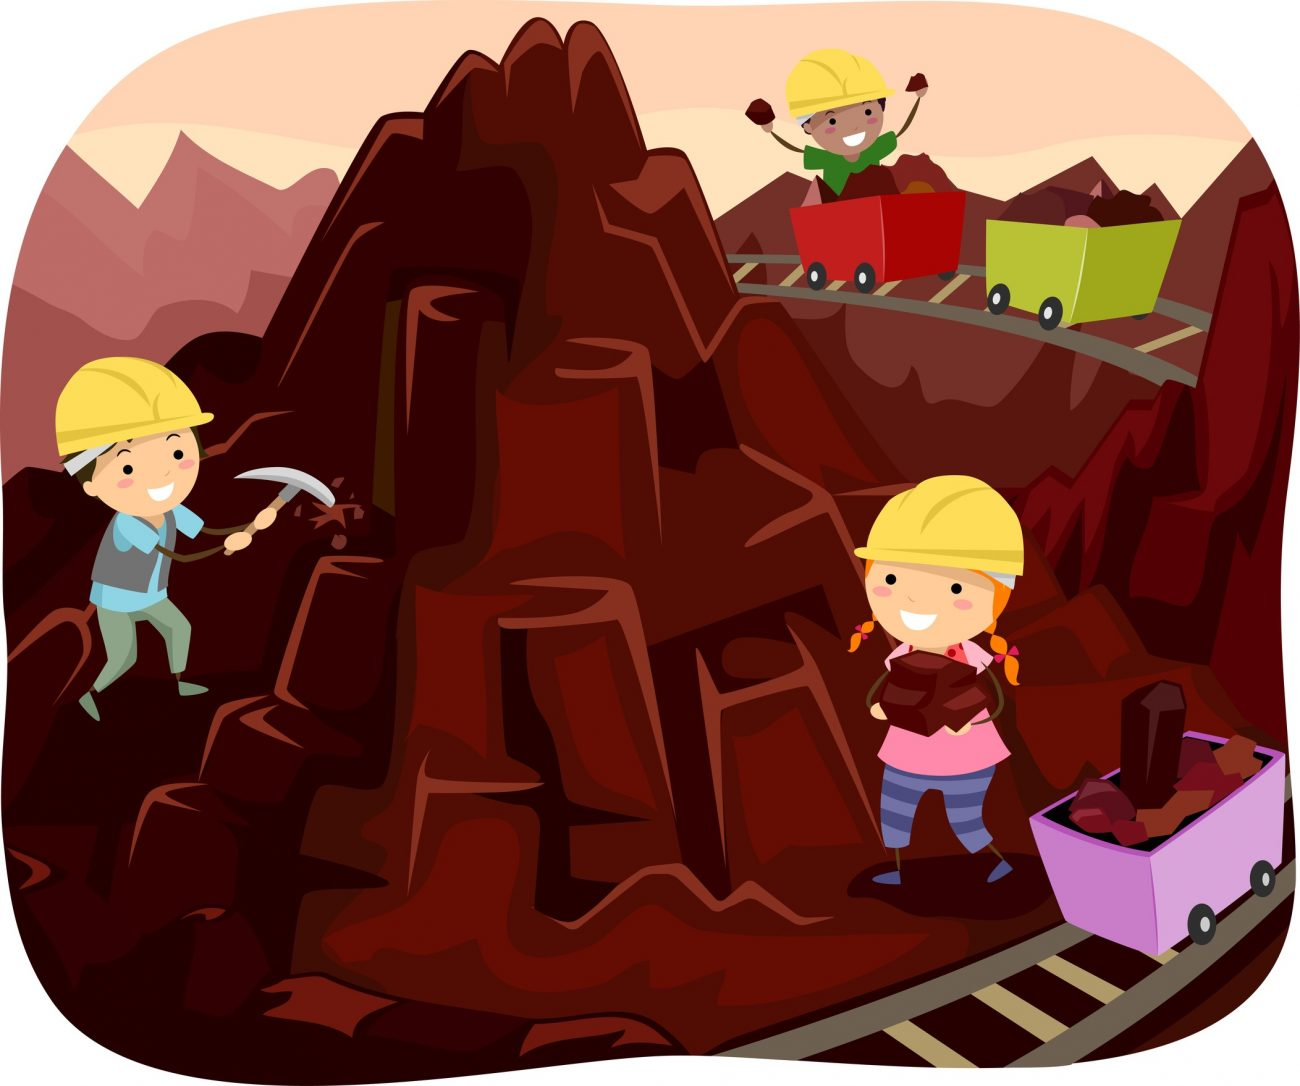 Stickman Illustration of Kids Mining Chocolates from a Chocolate Mountain